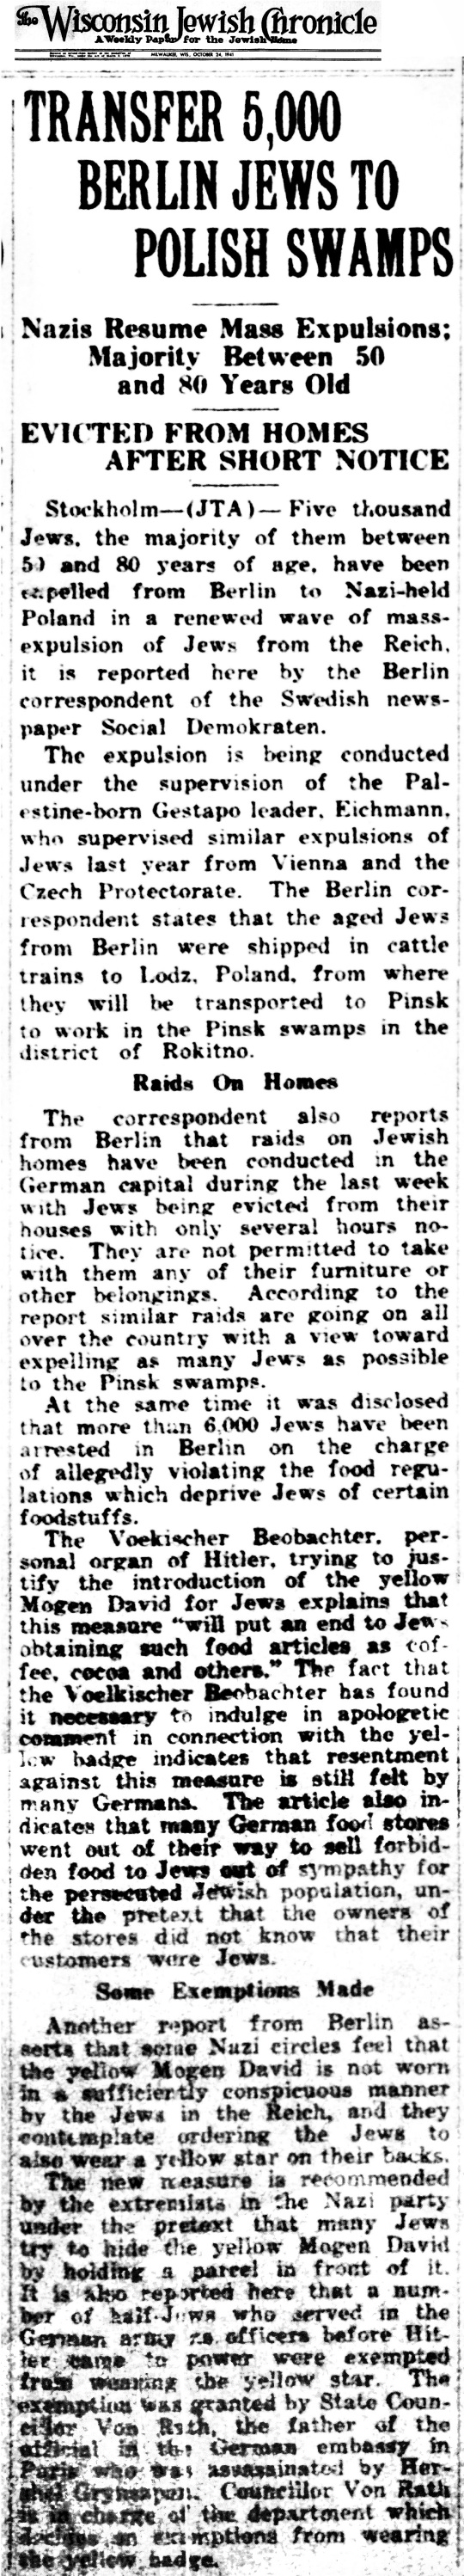 1941 Jews Explelled from Berlin Oct 24 -01